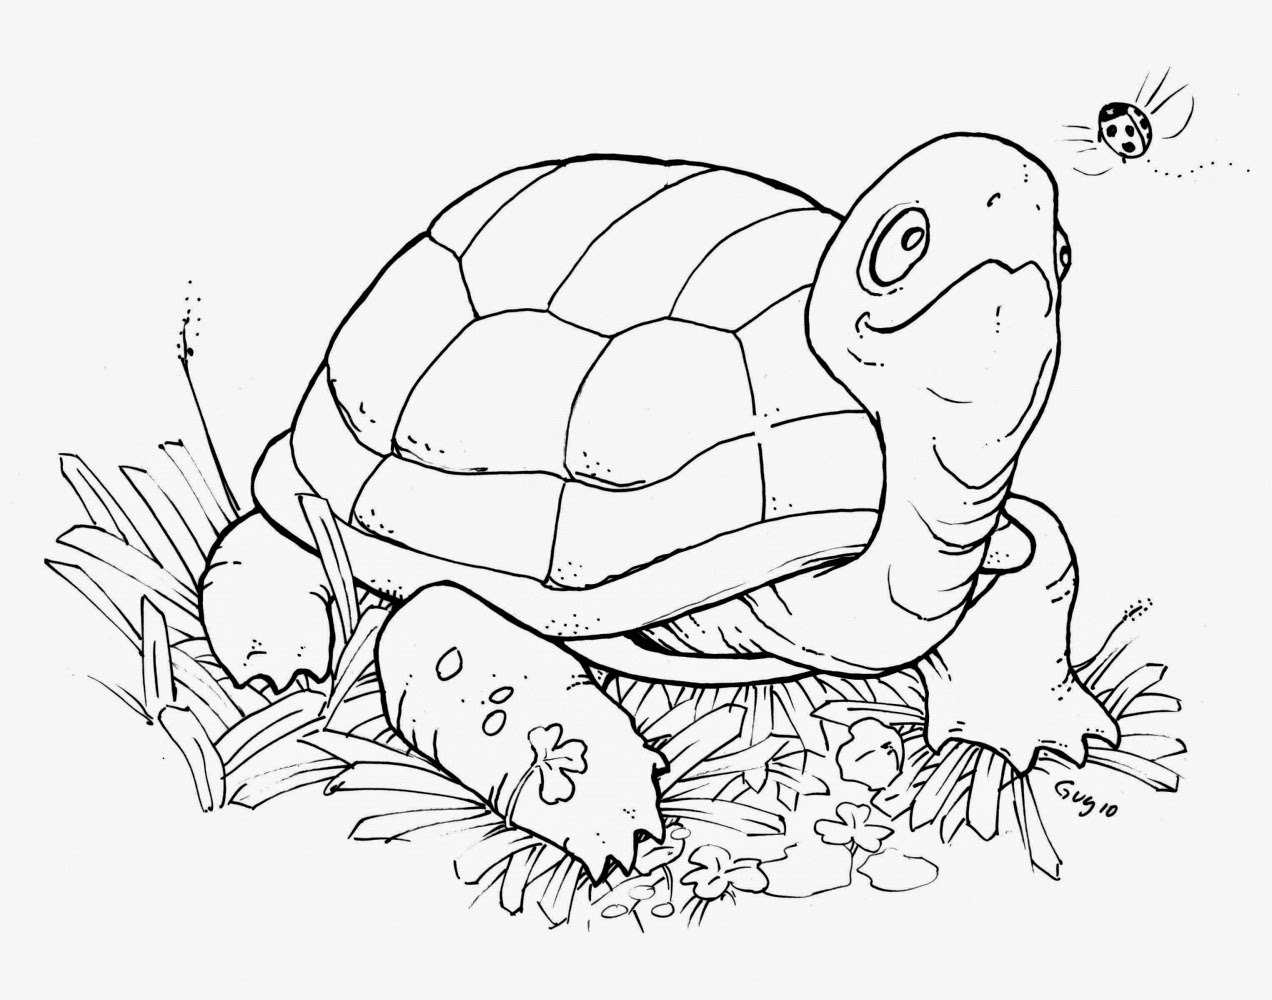 turtle pictures for coloring turtles free to color for kids turtles kids coloring pages pictures turtle coloring for